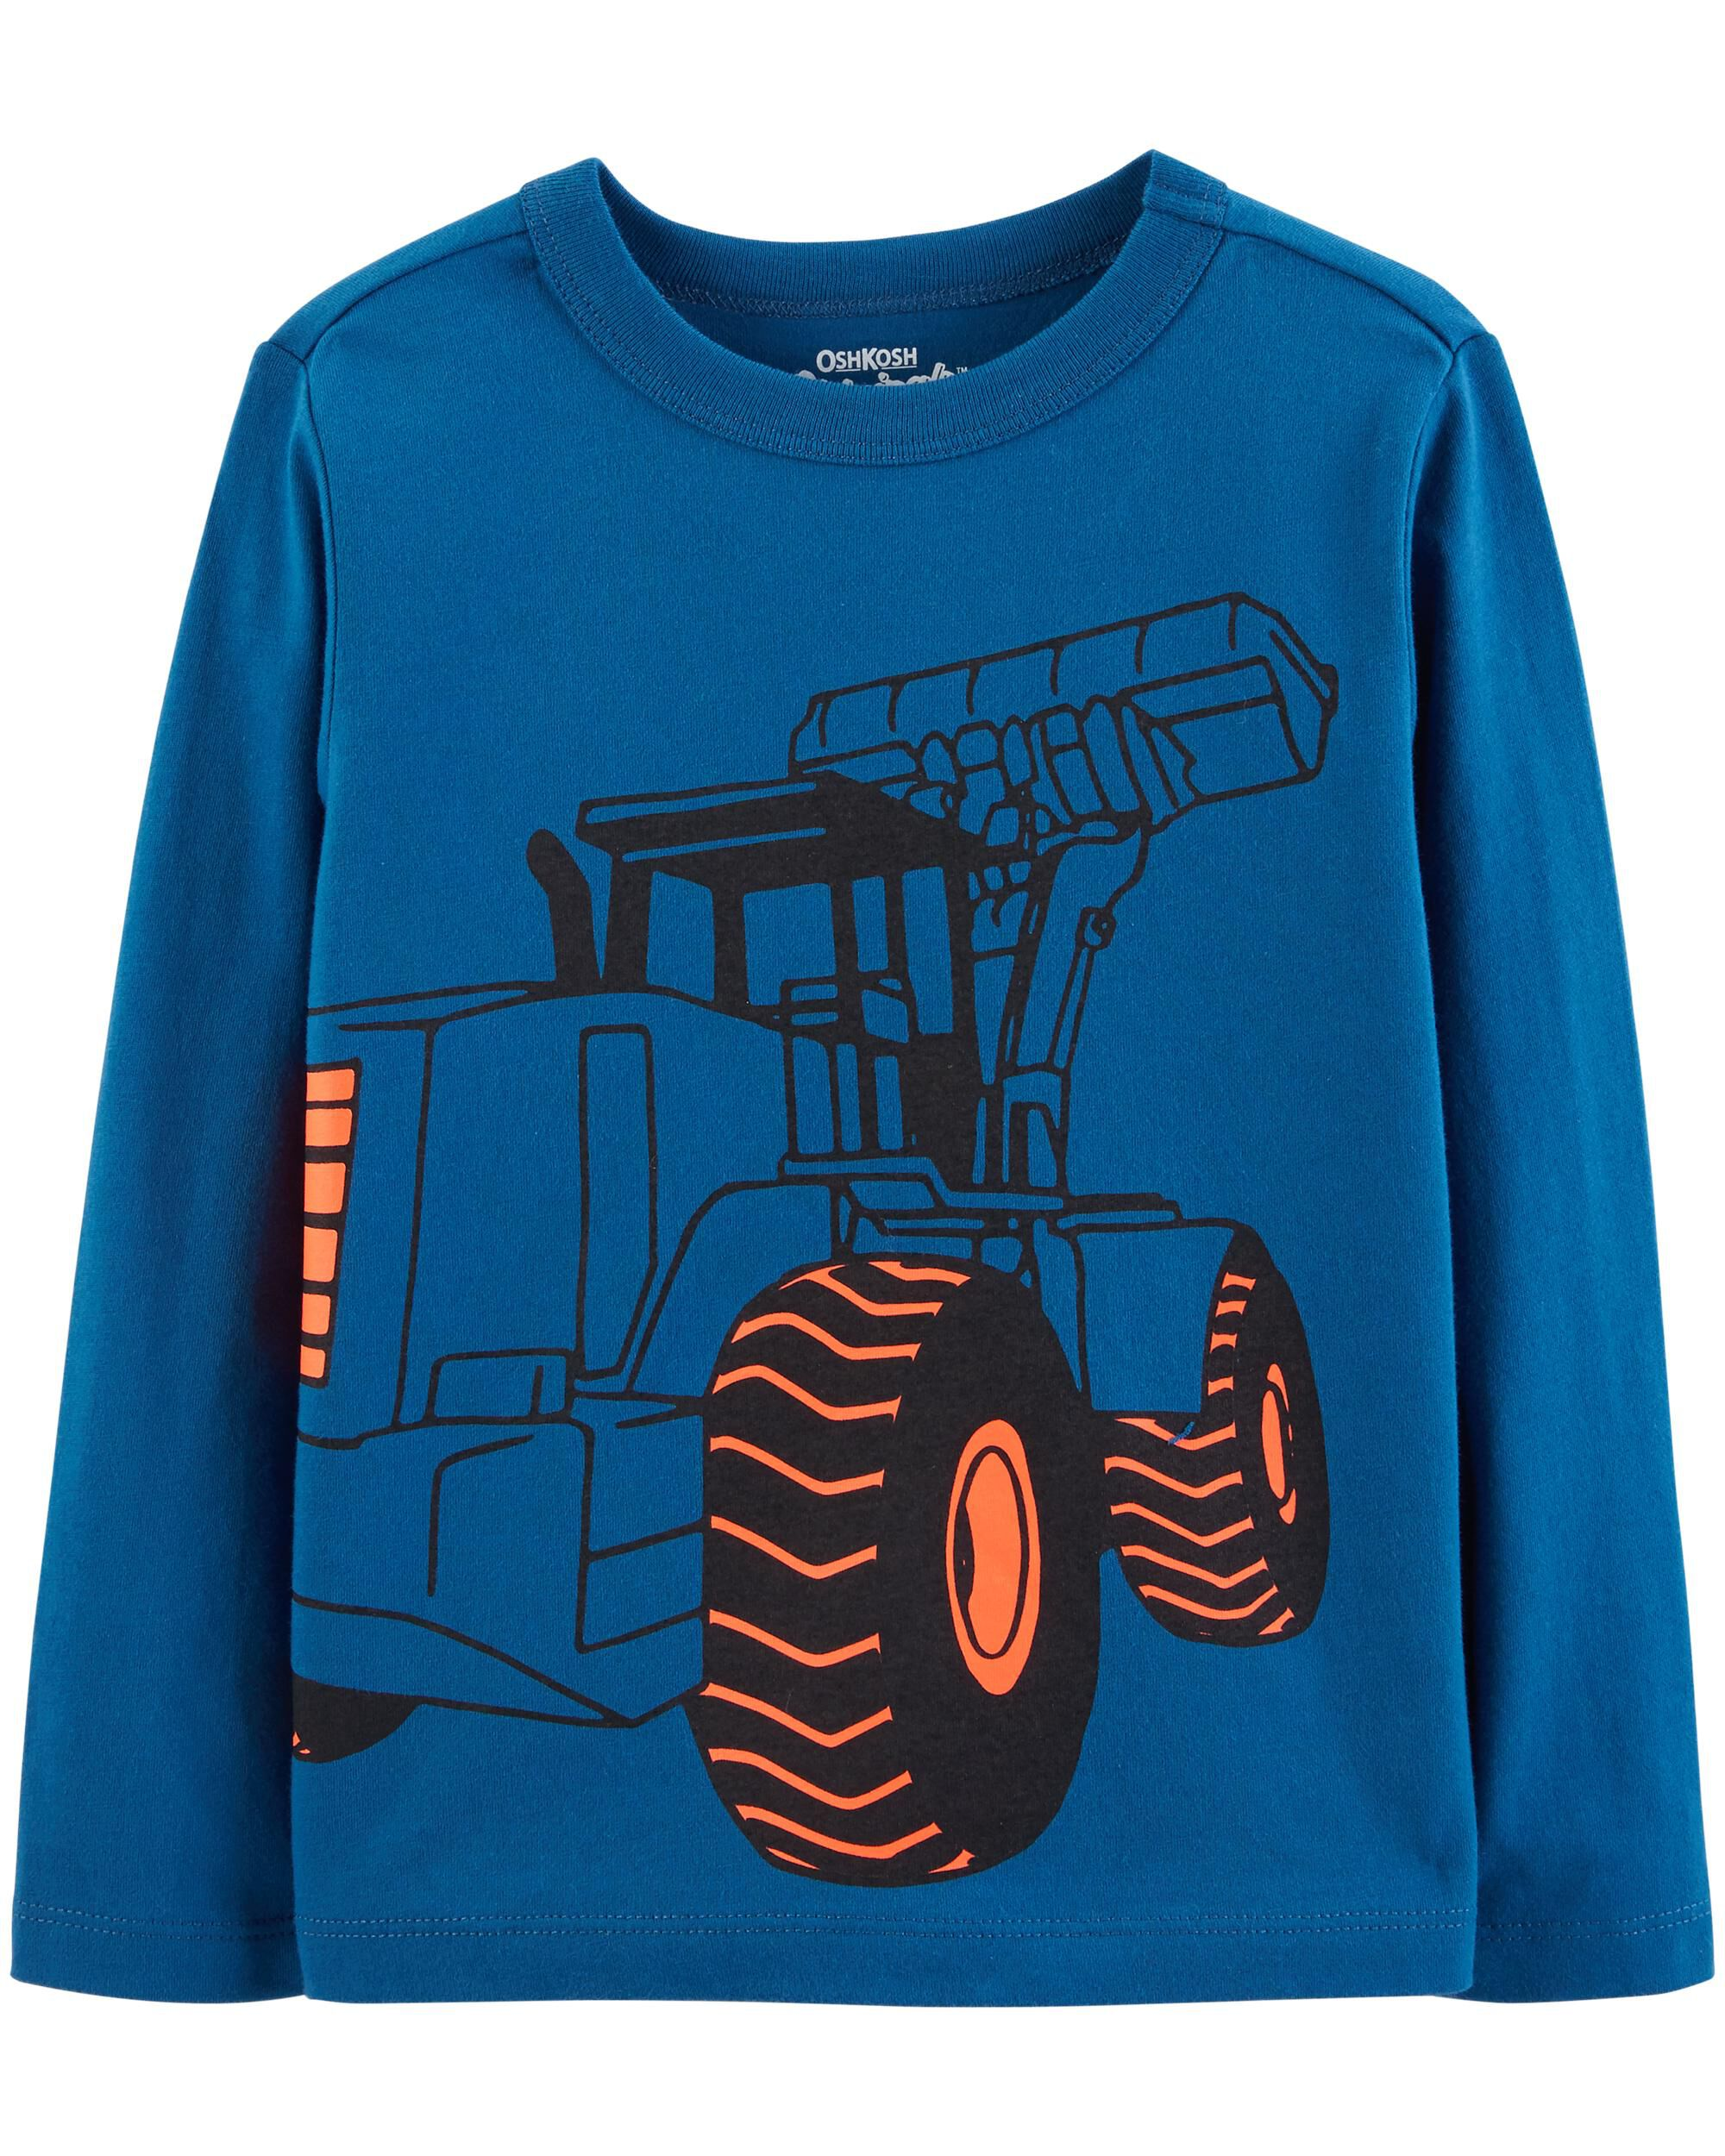 c92a1d41 Baby Boy OshKosh Originals Graphic Tee | OshKosh.com